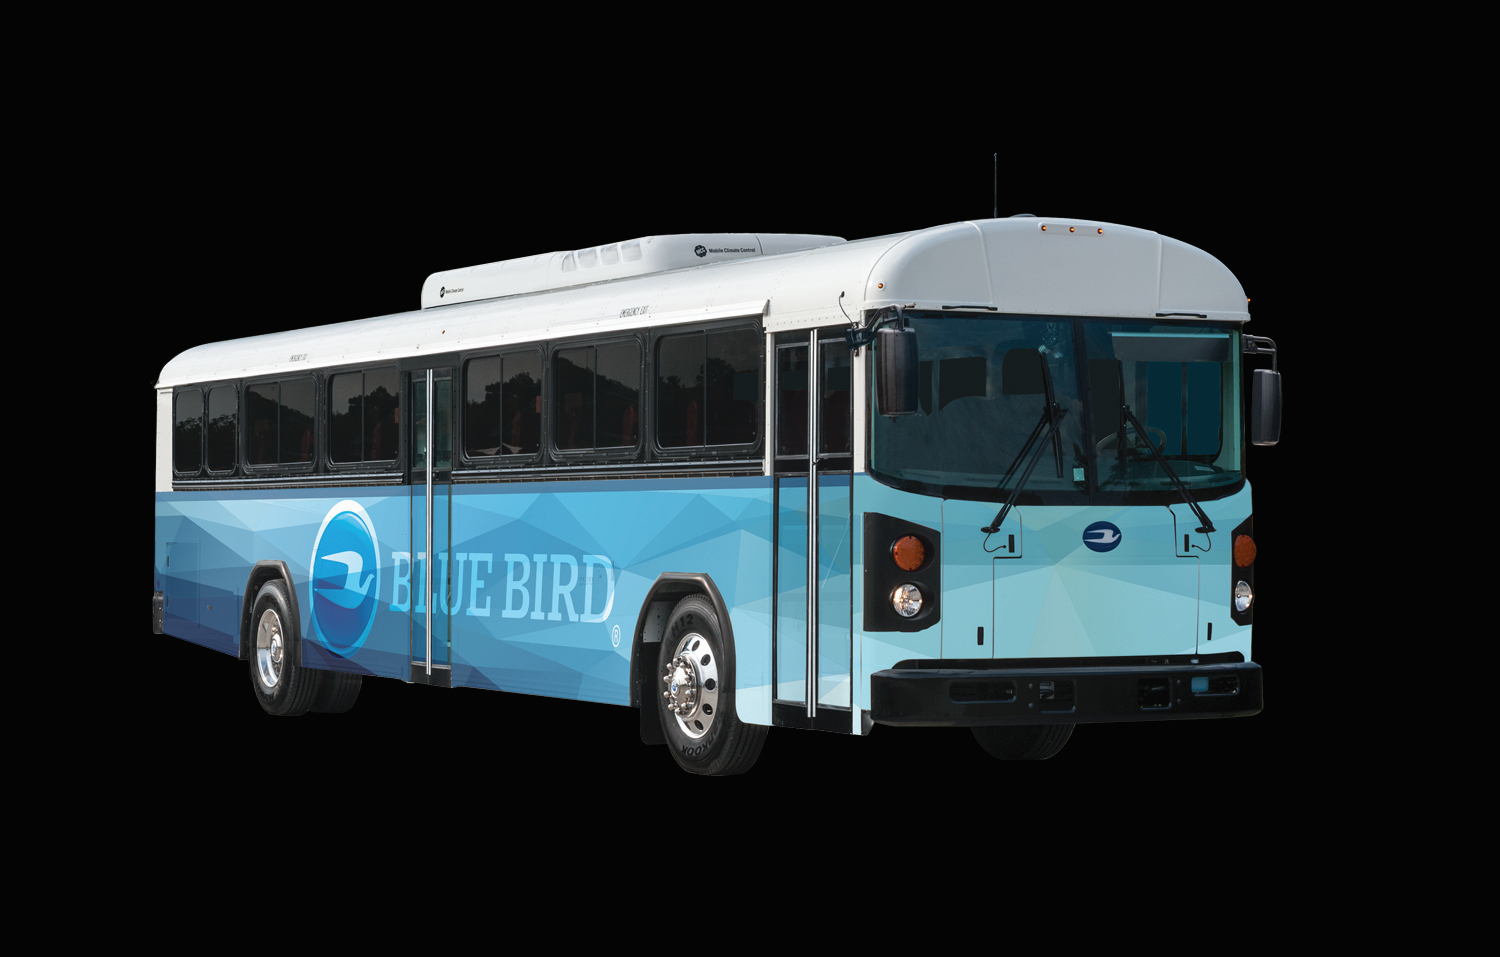 Blue Bird Bus >> Blue Bird Commercial Group Vision Details And Specifications Metro